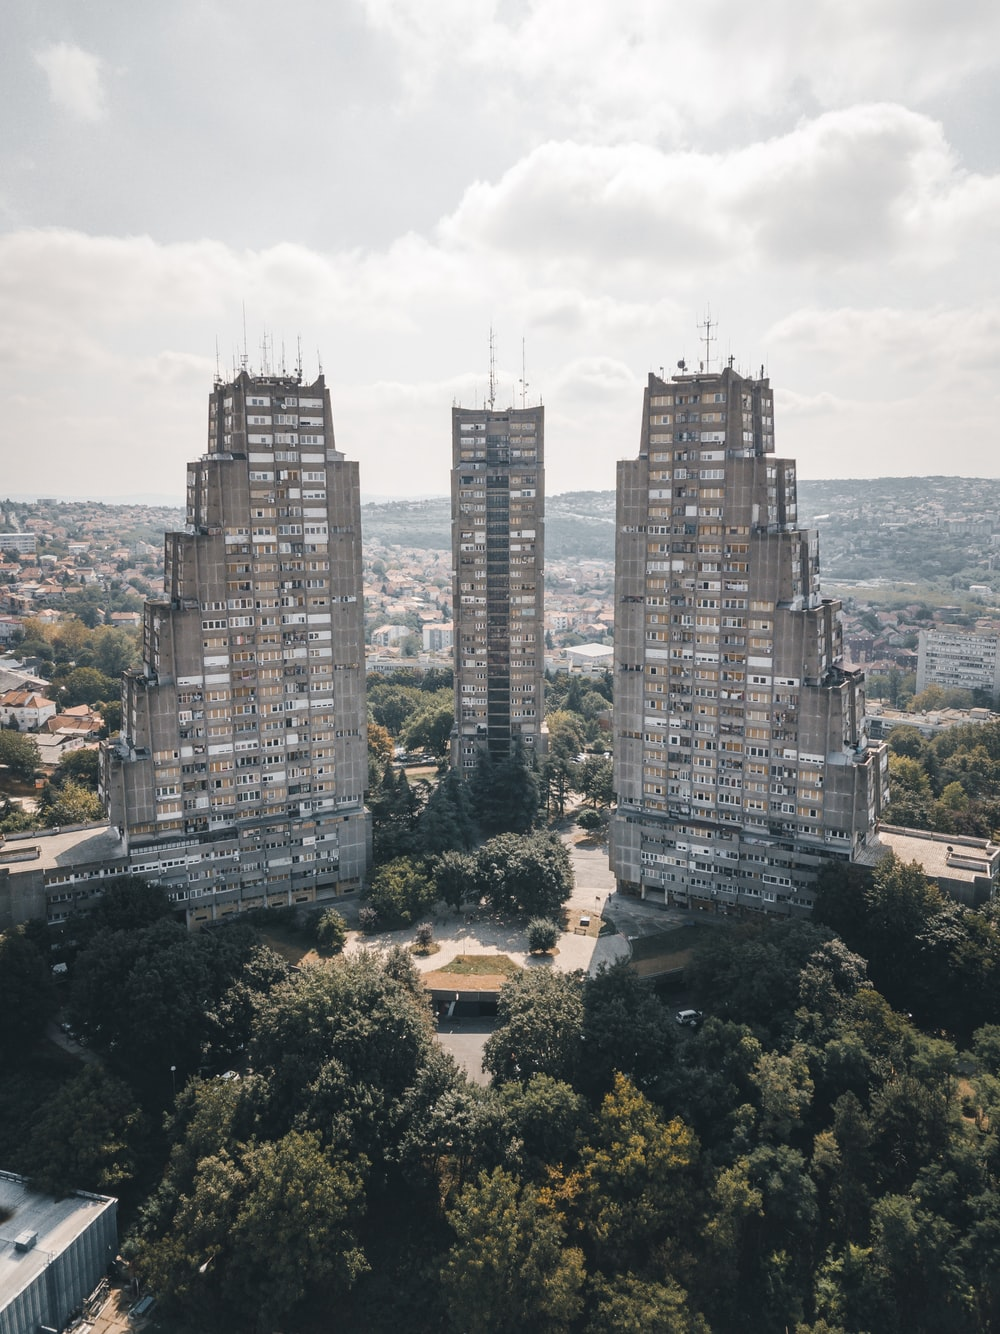 high-rise buildings and trees under cloudy sky